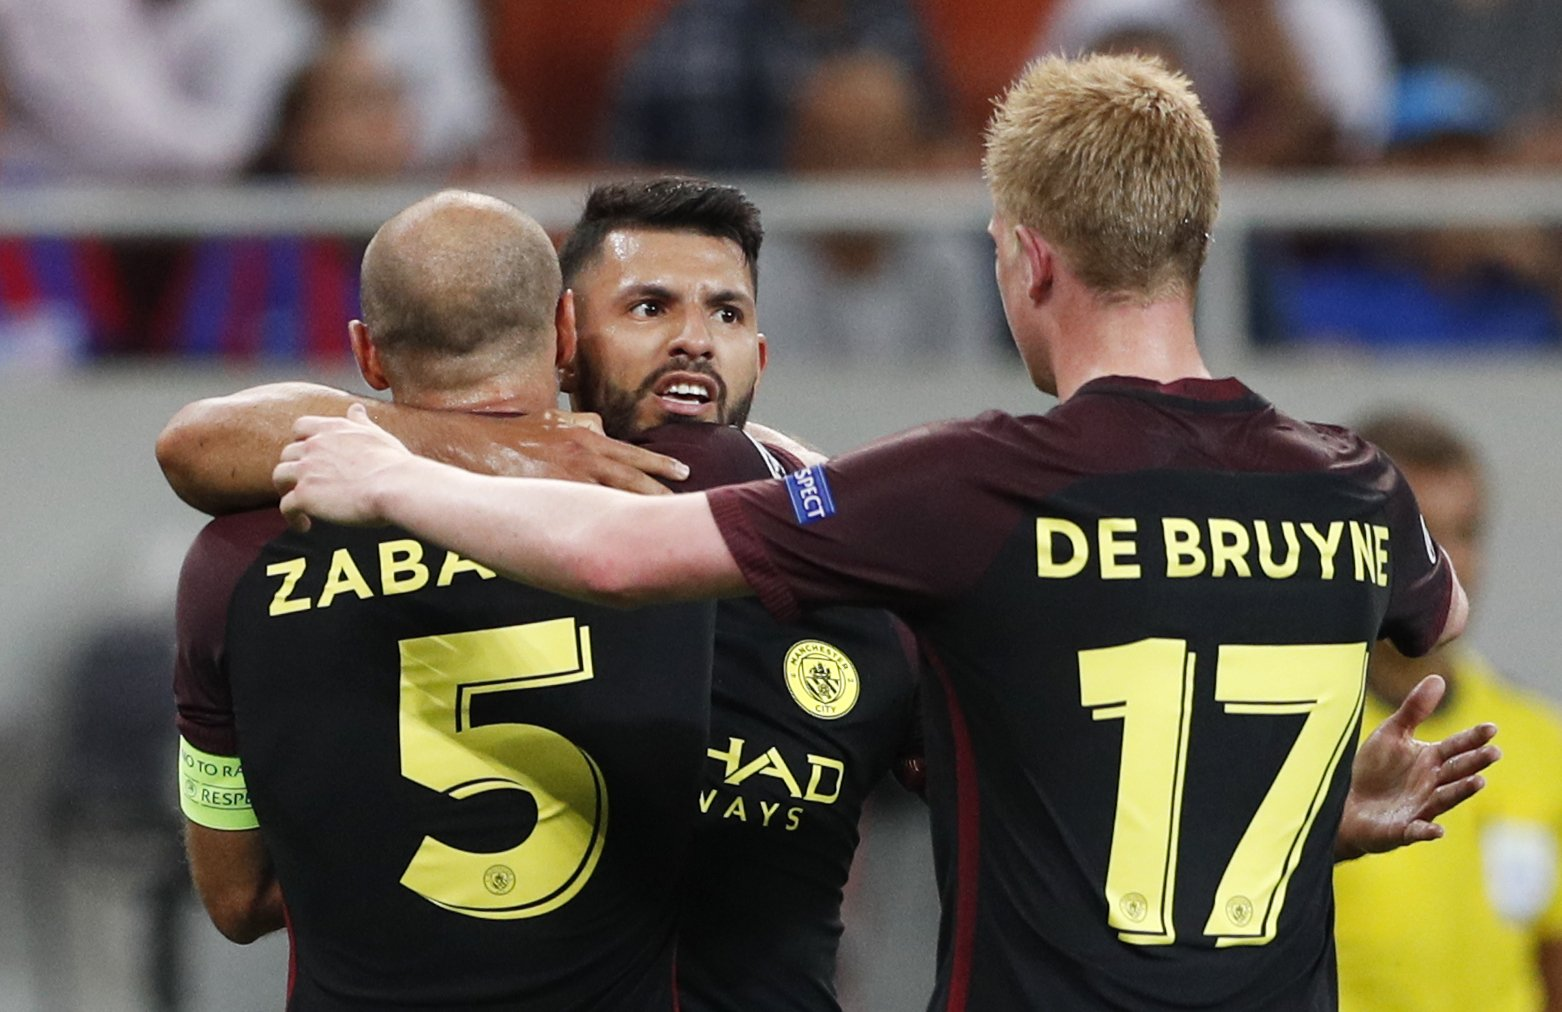 Aguero Bags Hat-Trick As City Rout Steau, Iheanacho Benched